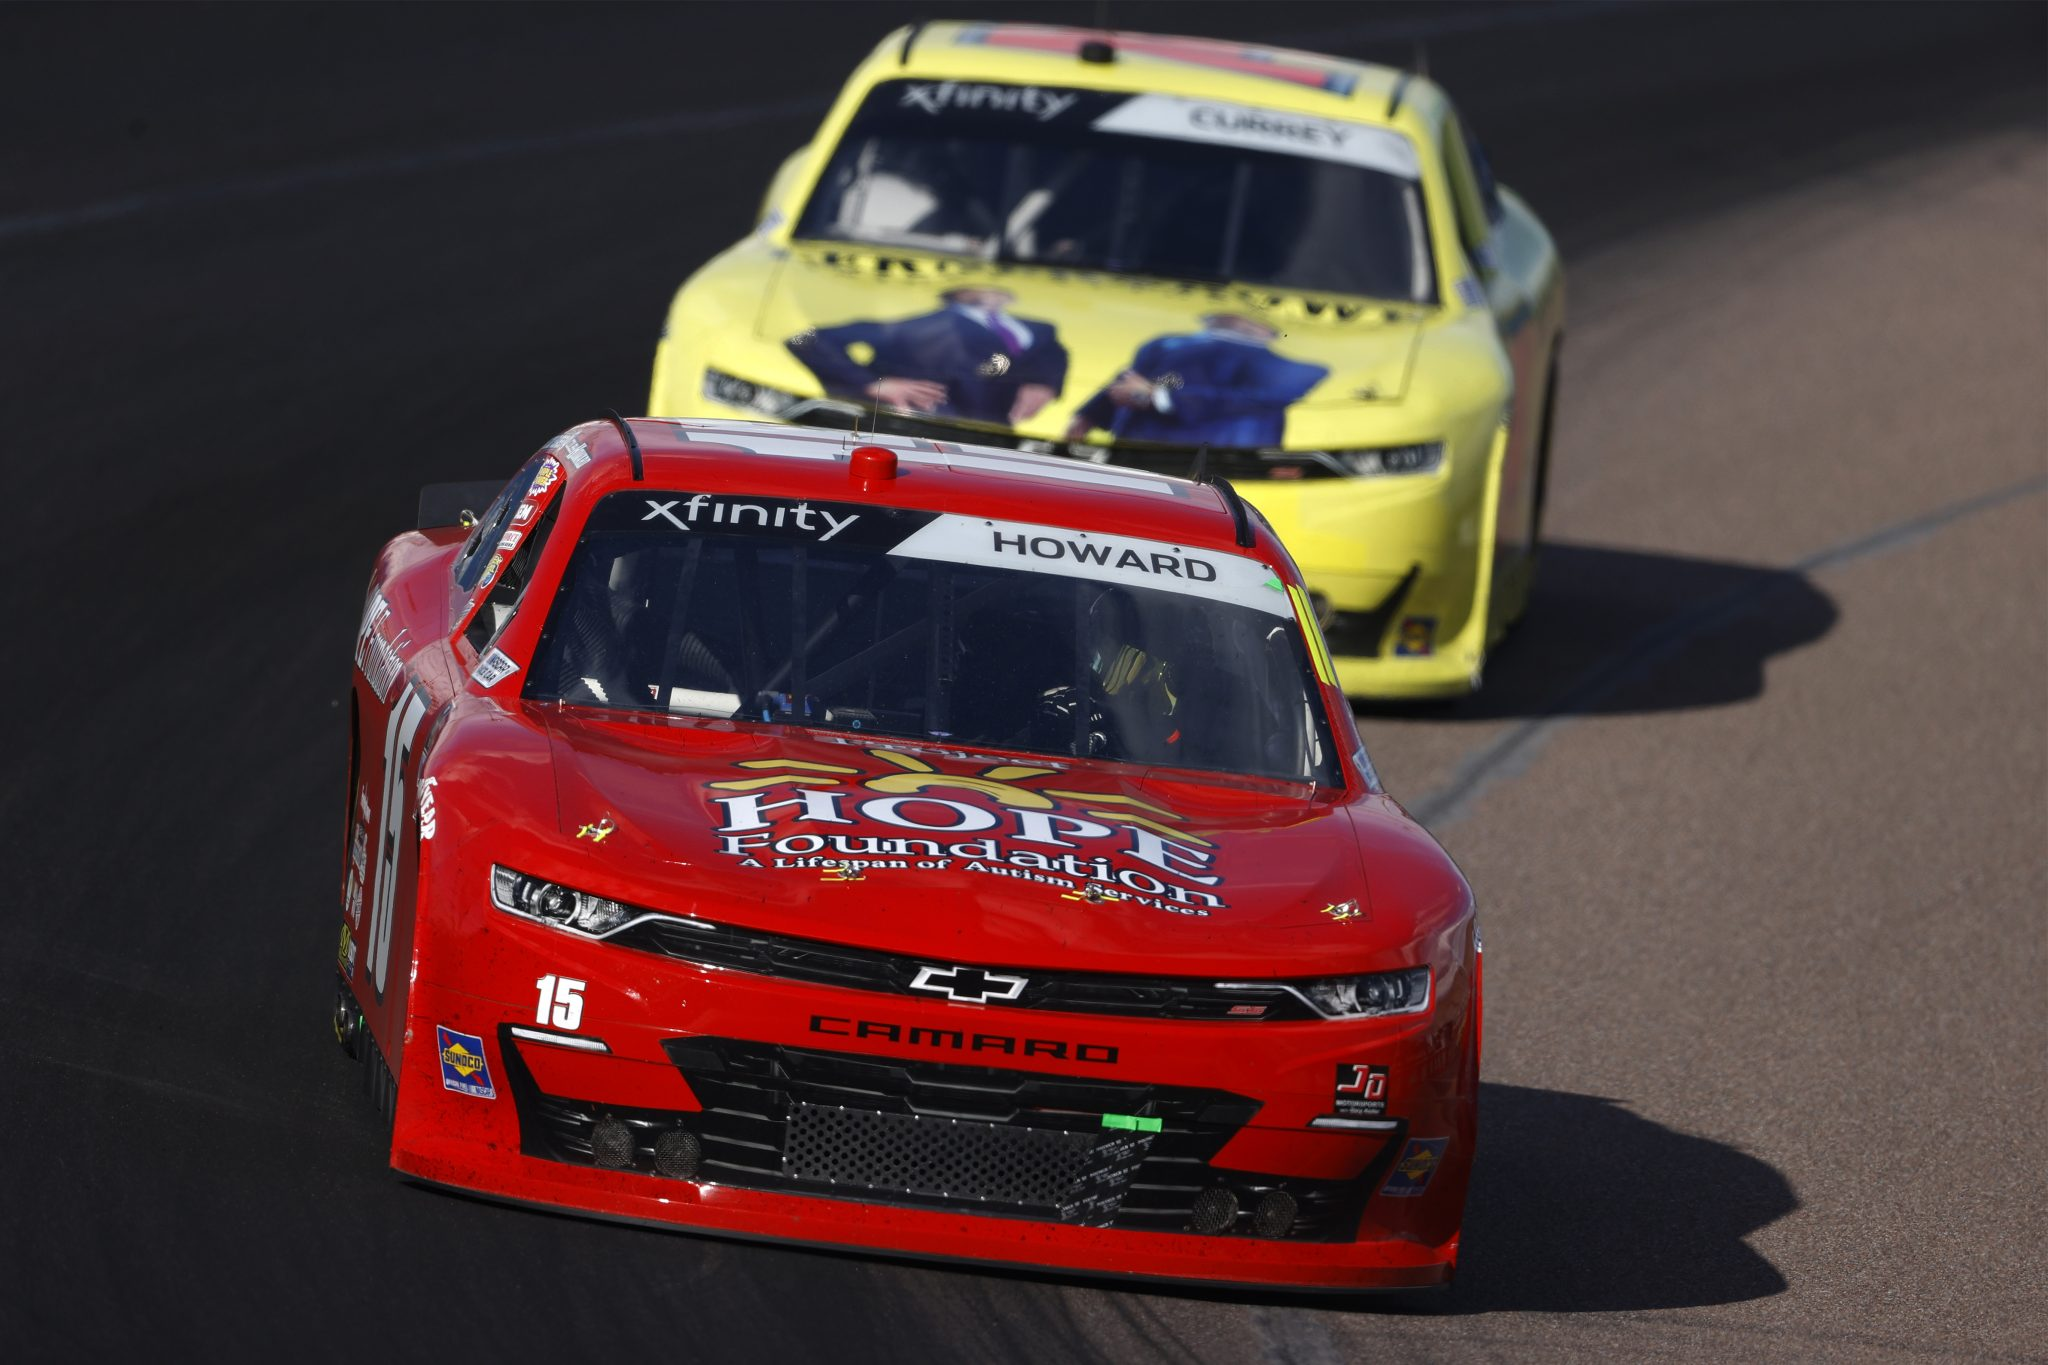 AVONDALE, ARIZONA - MARCH 13: Colby Howard, driver of the #15 Project Hope Foundation Chevrolet, drives during the NASCAR Xfinity Series Call 811 Before You Dig 200 presented by Arizona 811 at Phoenix Raceway on March 13, 2021 in Avondale, Arizona. (Photo by Christian Petersen/Getty Images) | Getty Images